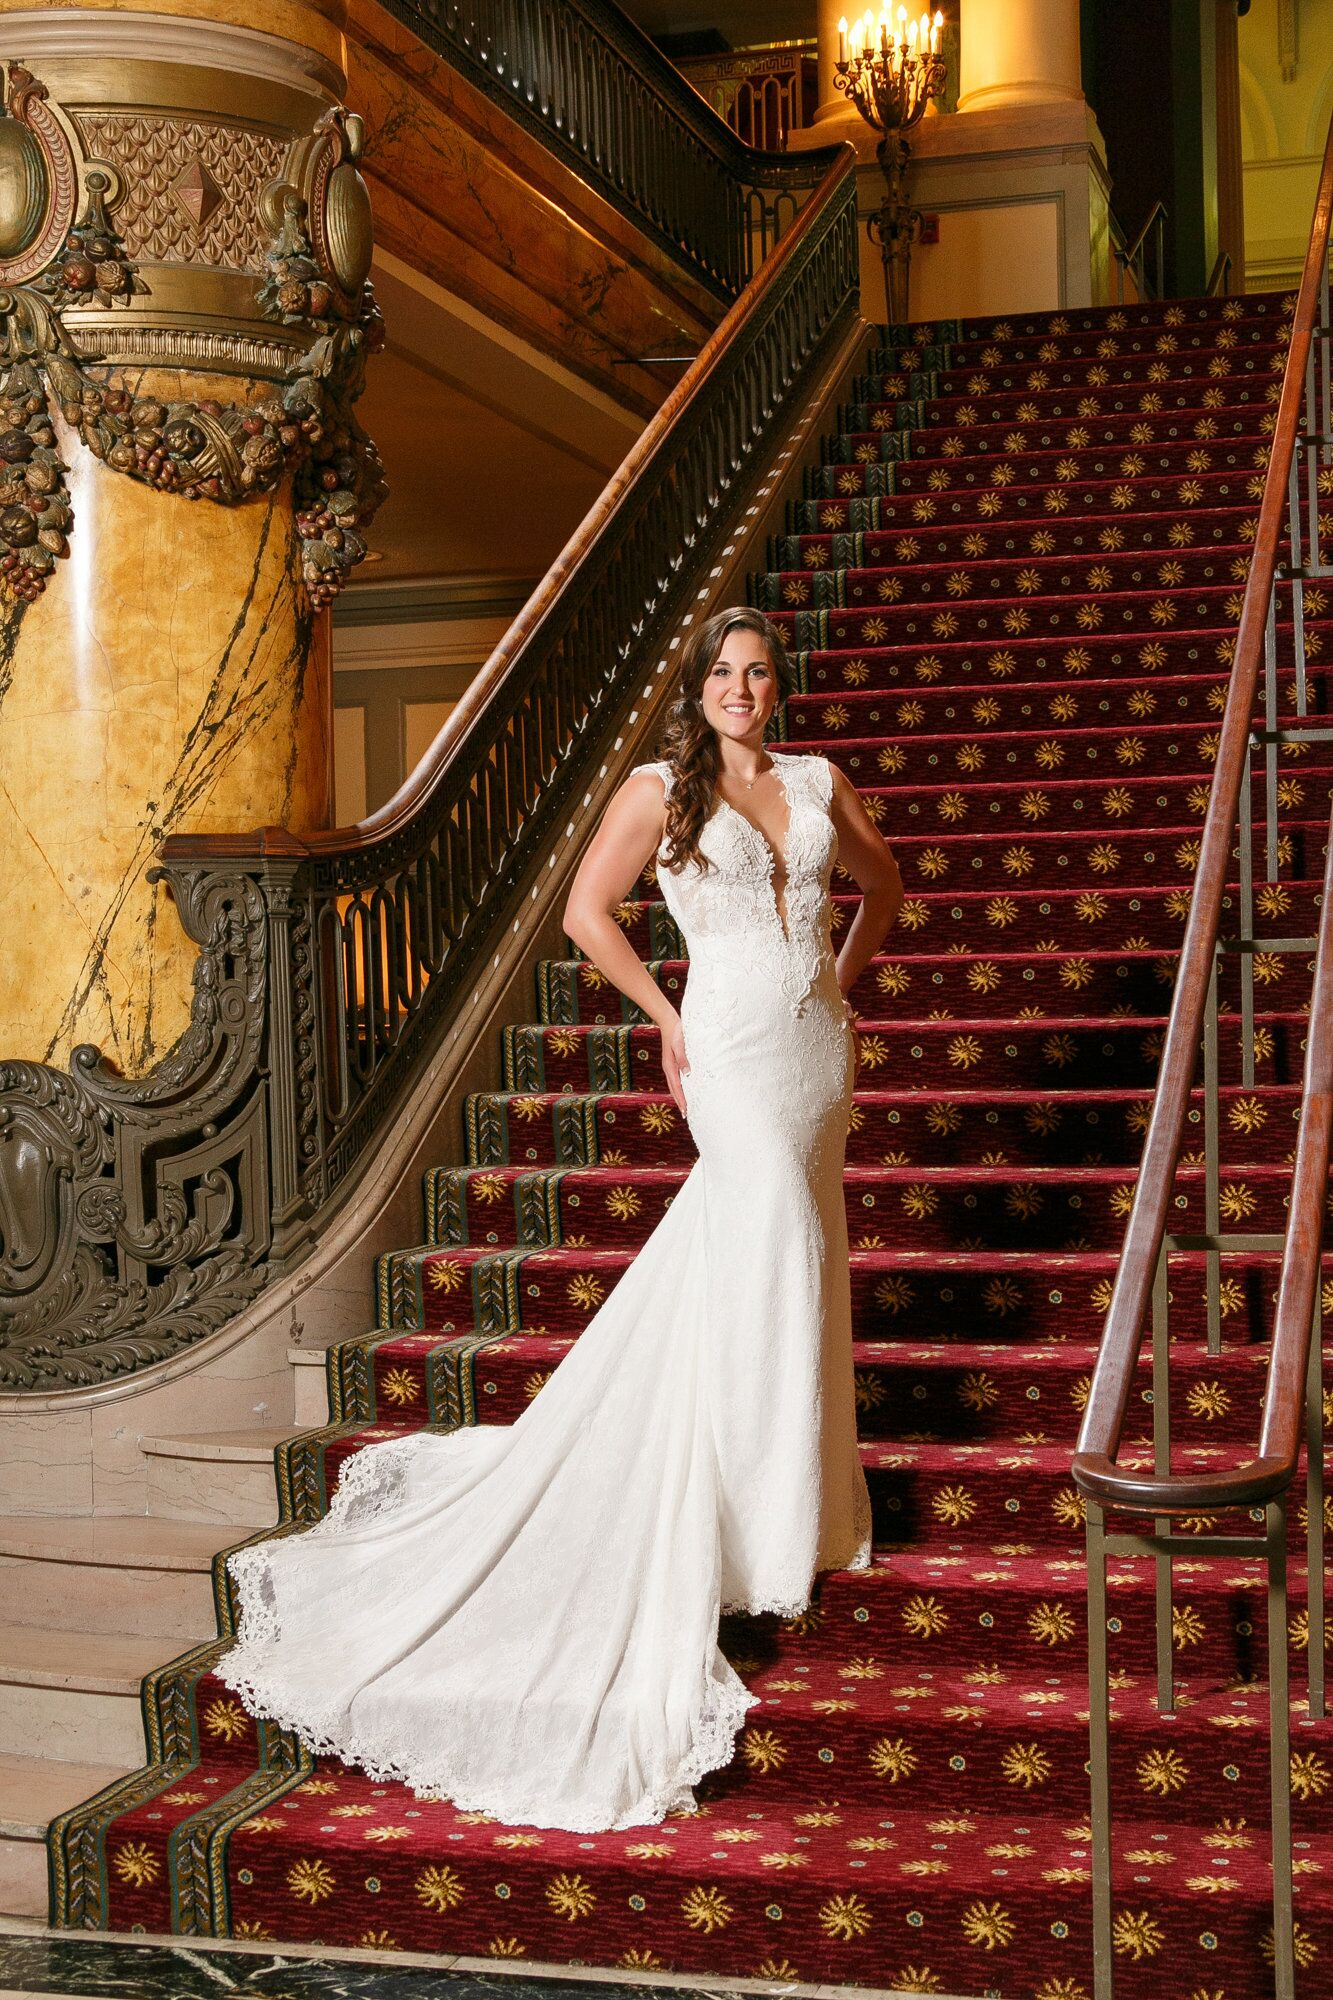 amanda posed on the jefferson hotel staircase